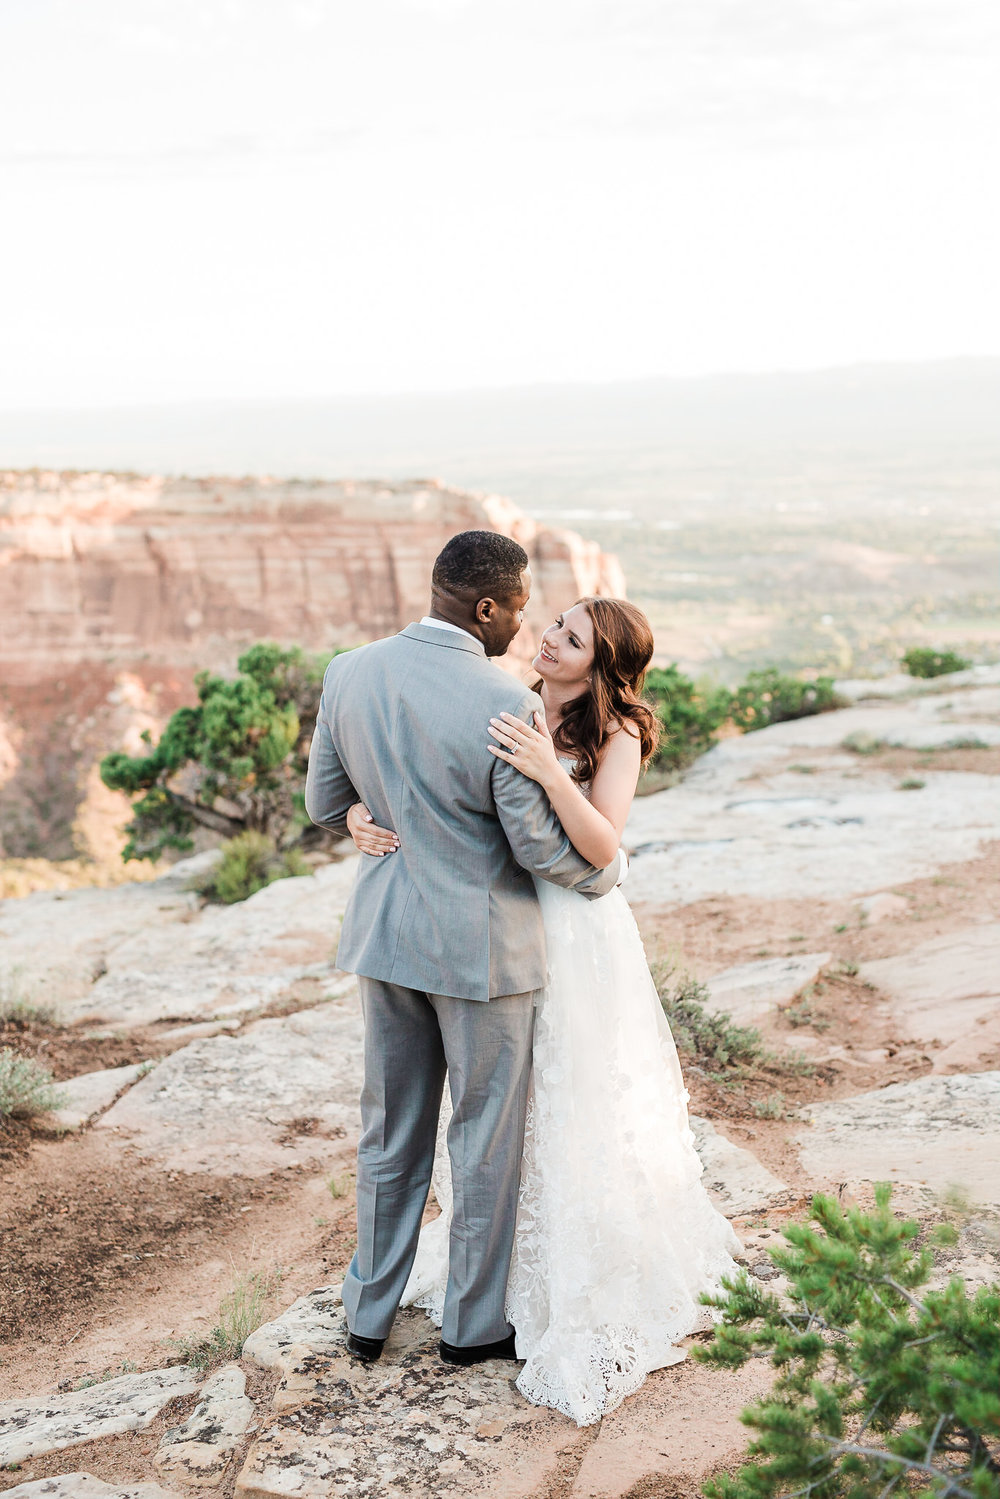 Interracial couple dance on the Colorado National Monument during their sunrise wedding portrait session